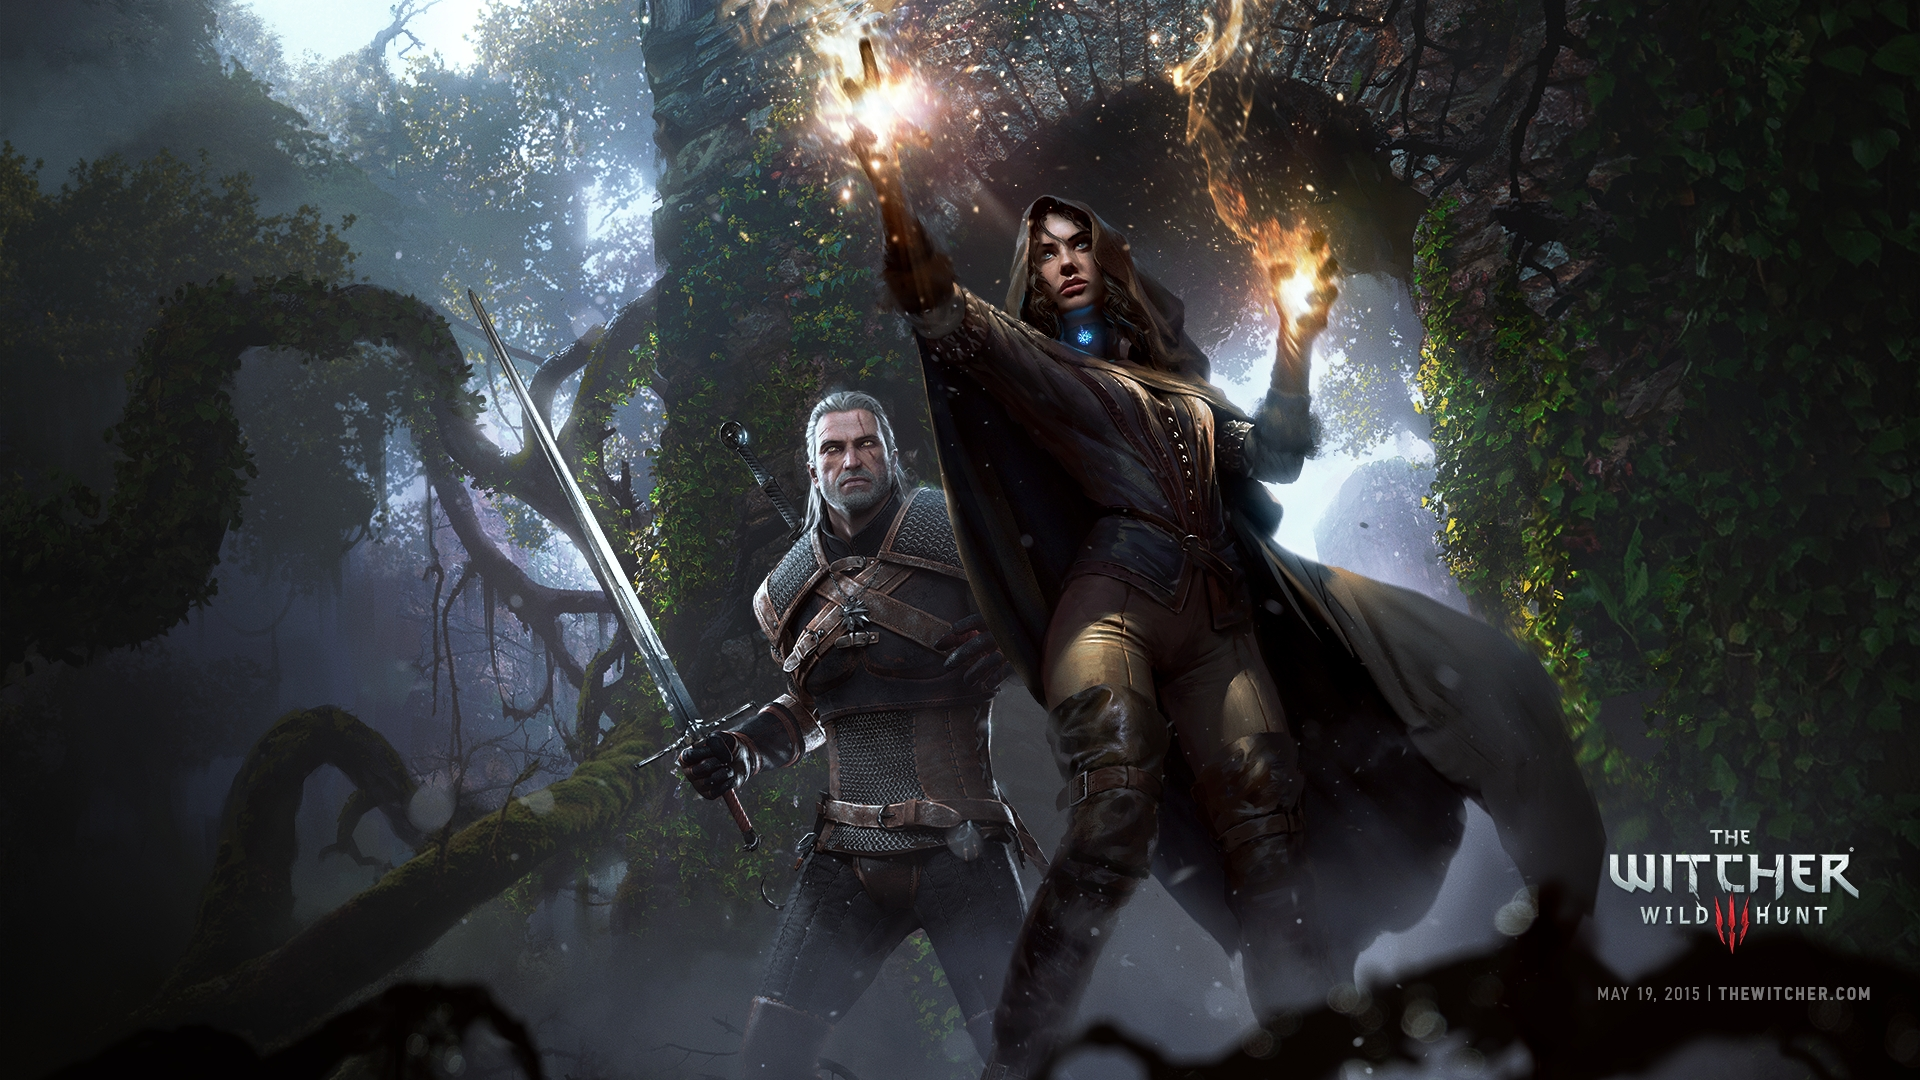 The Witcher Saga Is Coming To Netflix With Author Andrzej Sapkowski On Board Gameaxis